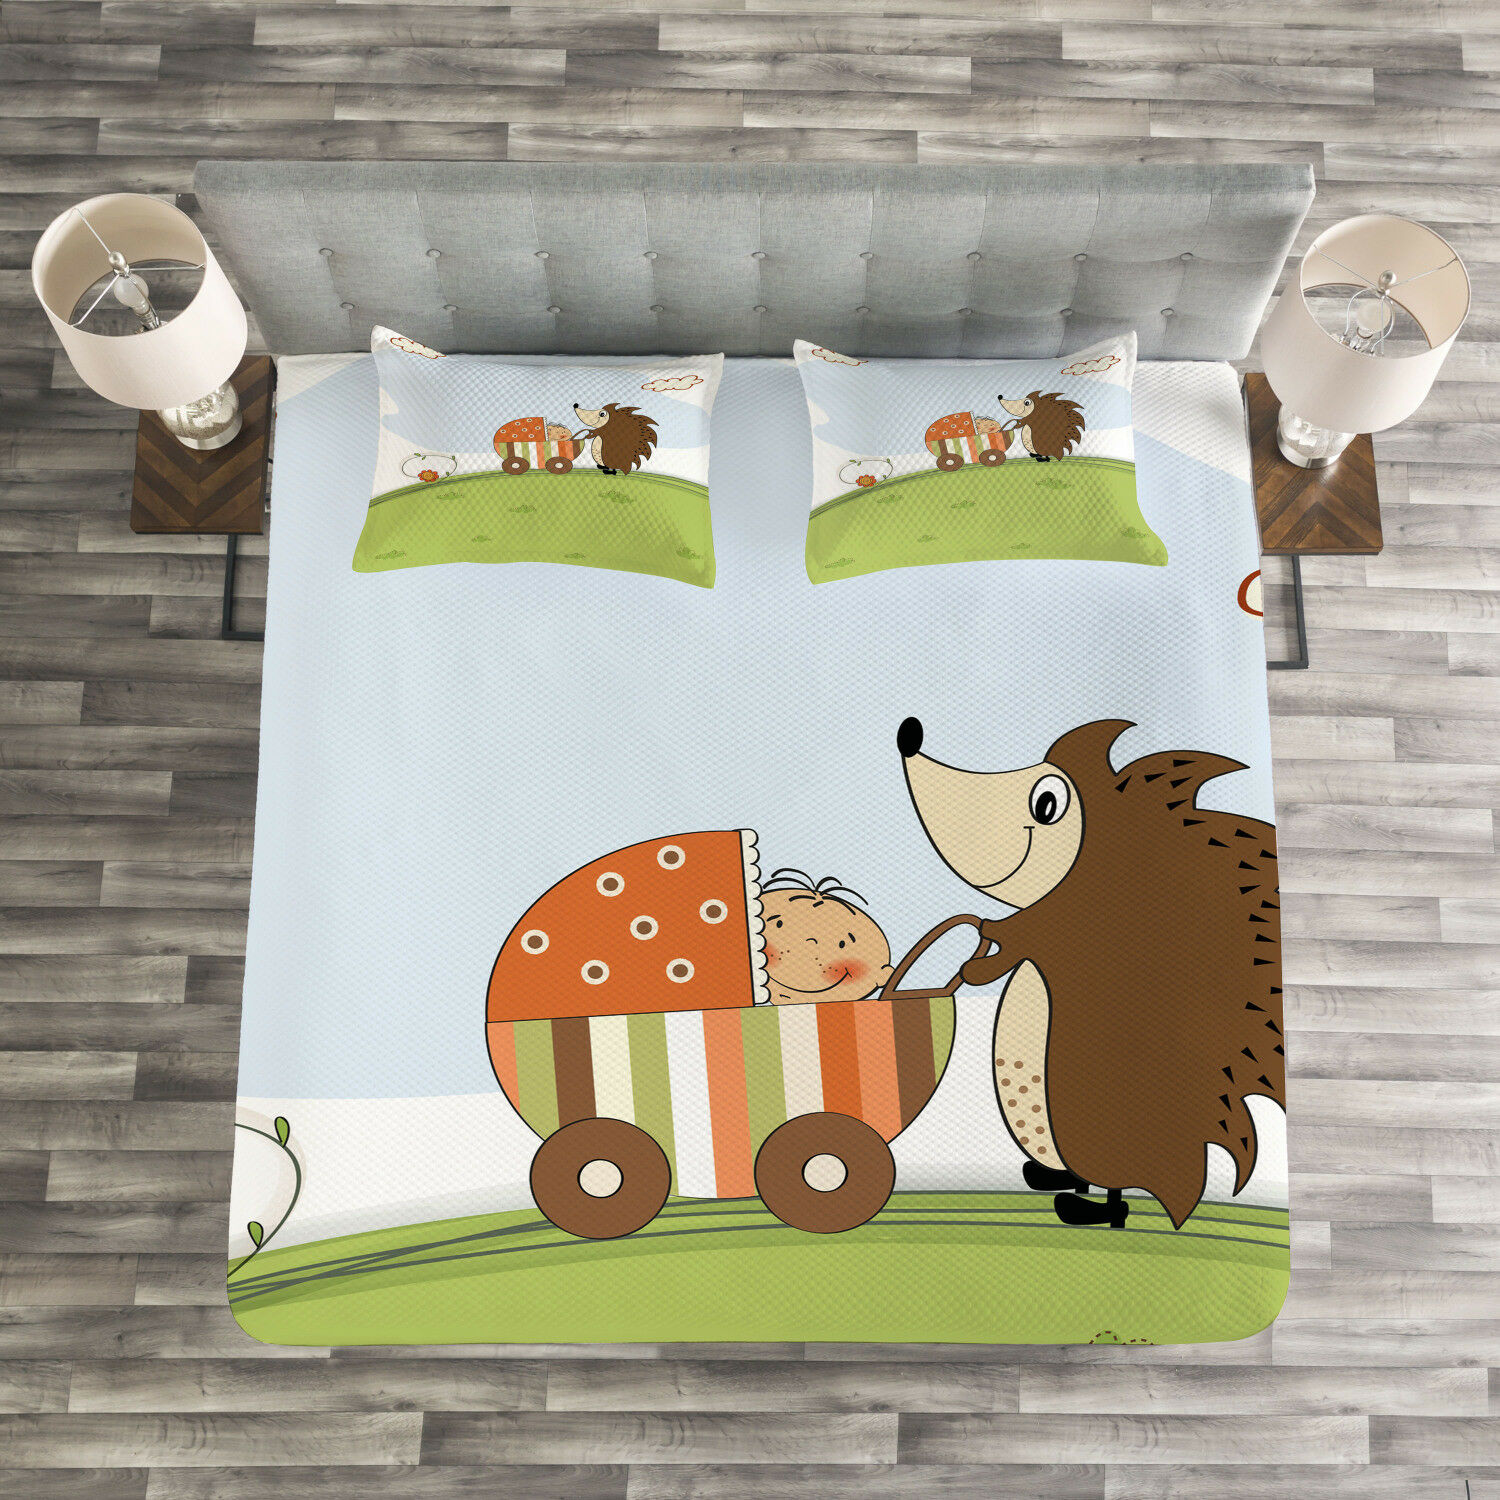 Funny Quilted Bedspread & Pillow Shams Set, Baby Shower and Hedgehog Print